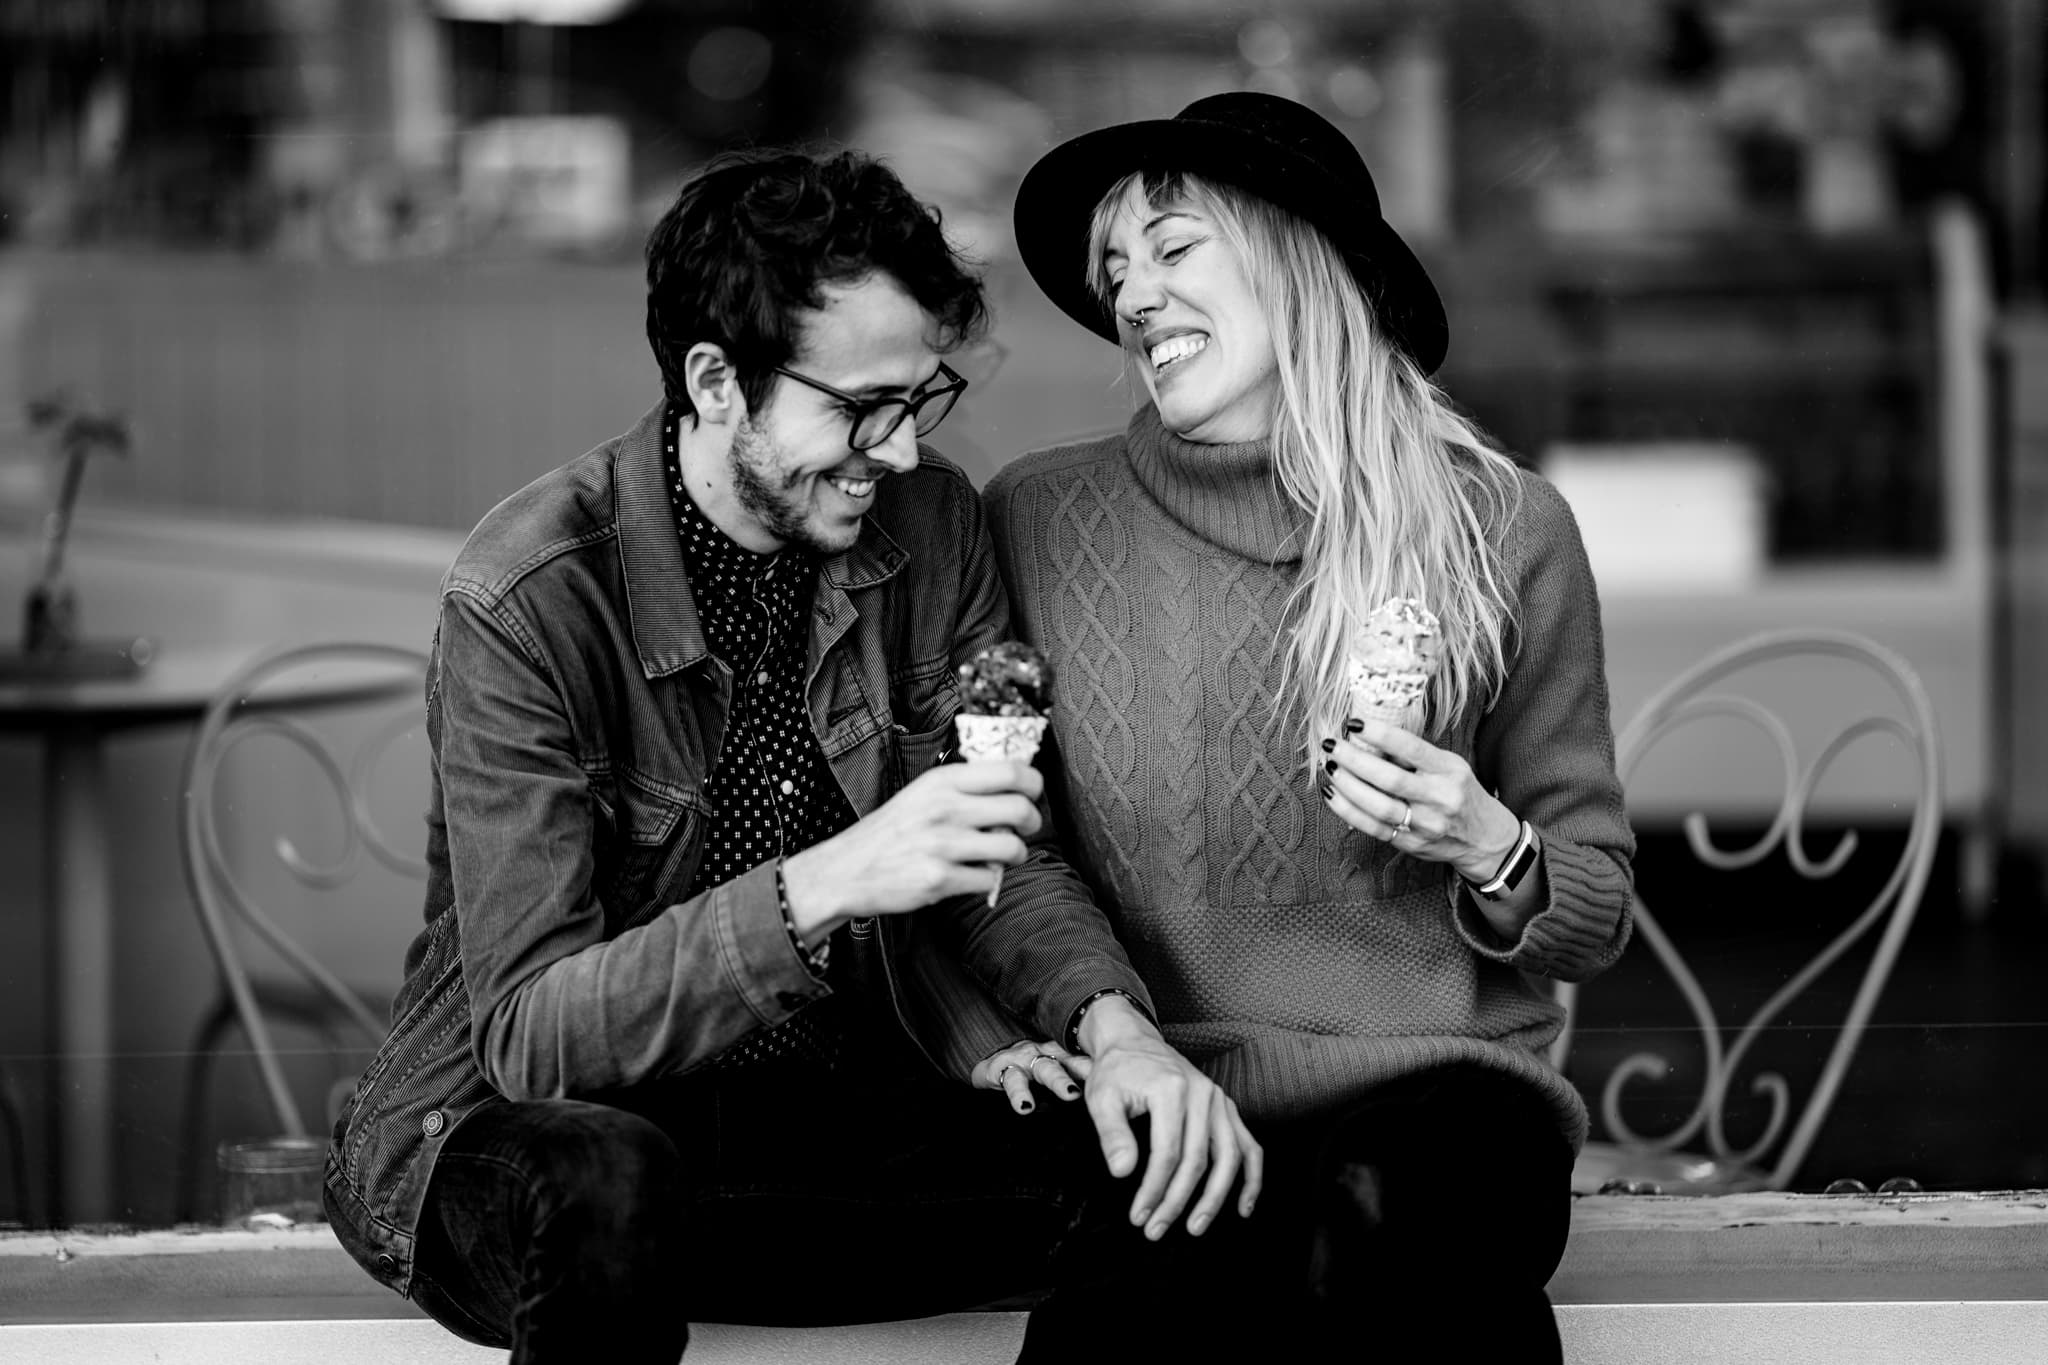 Man and woman enjoy ice cream together at Kelli's Bakery in Austin by Austin Wedding Photographer Studio 22 Photography